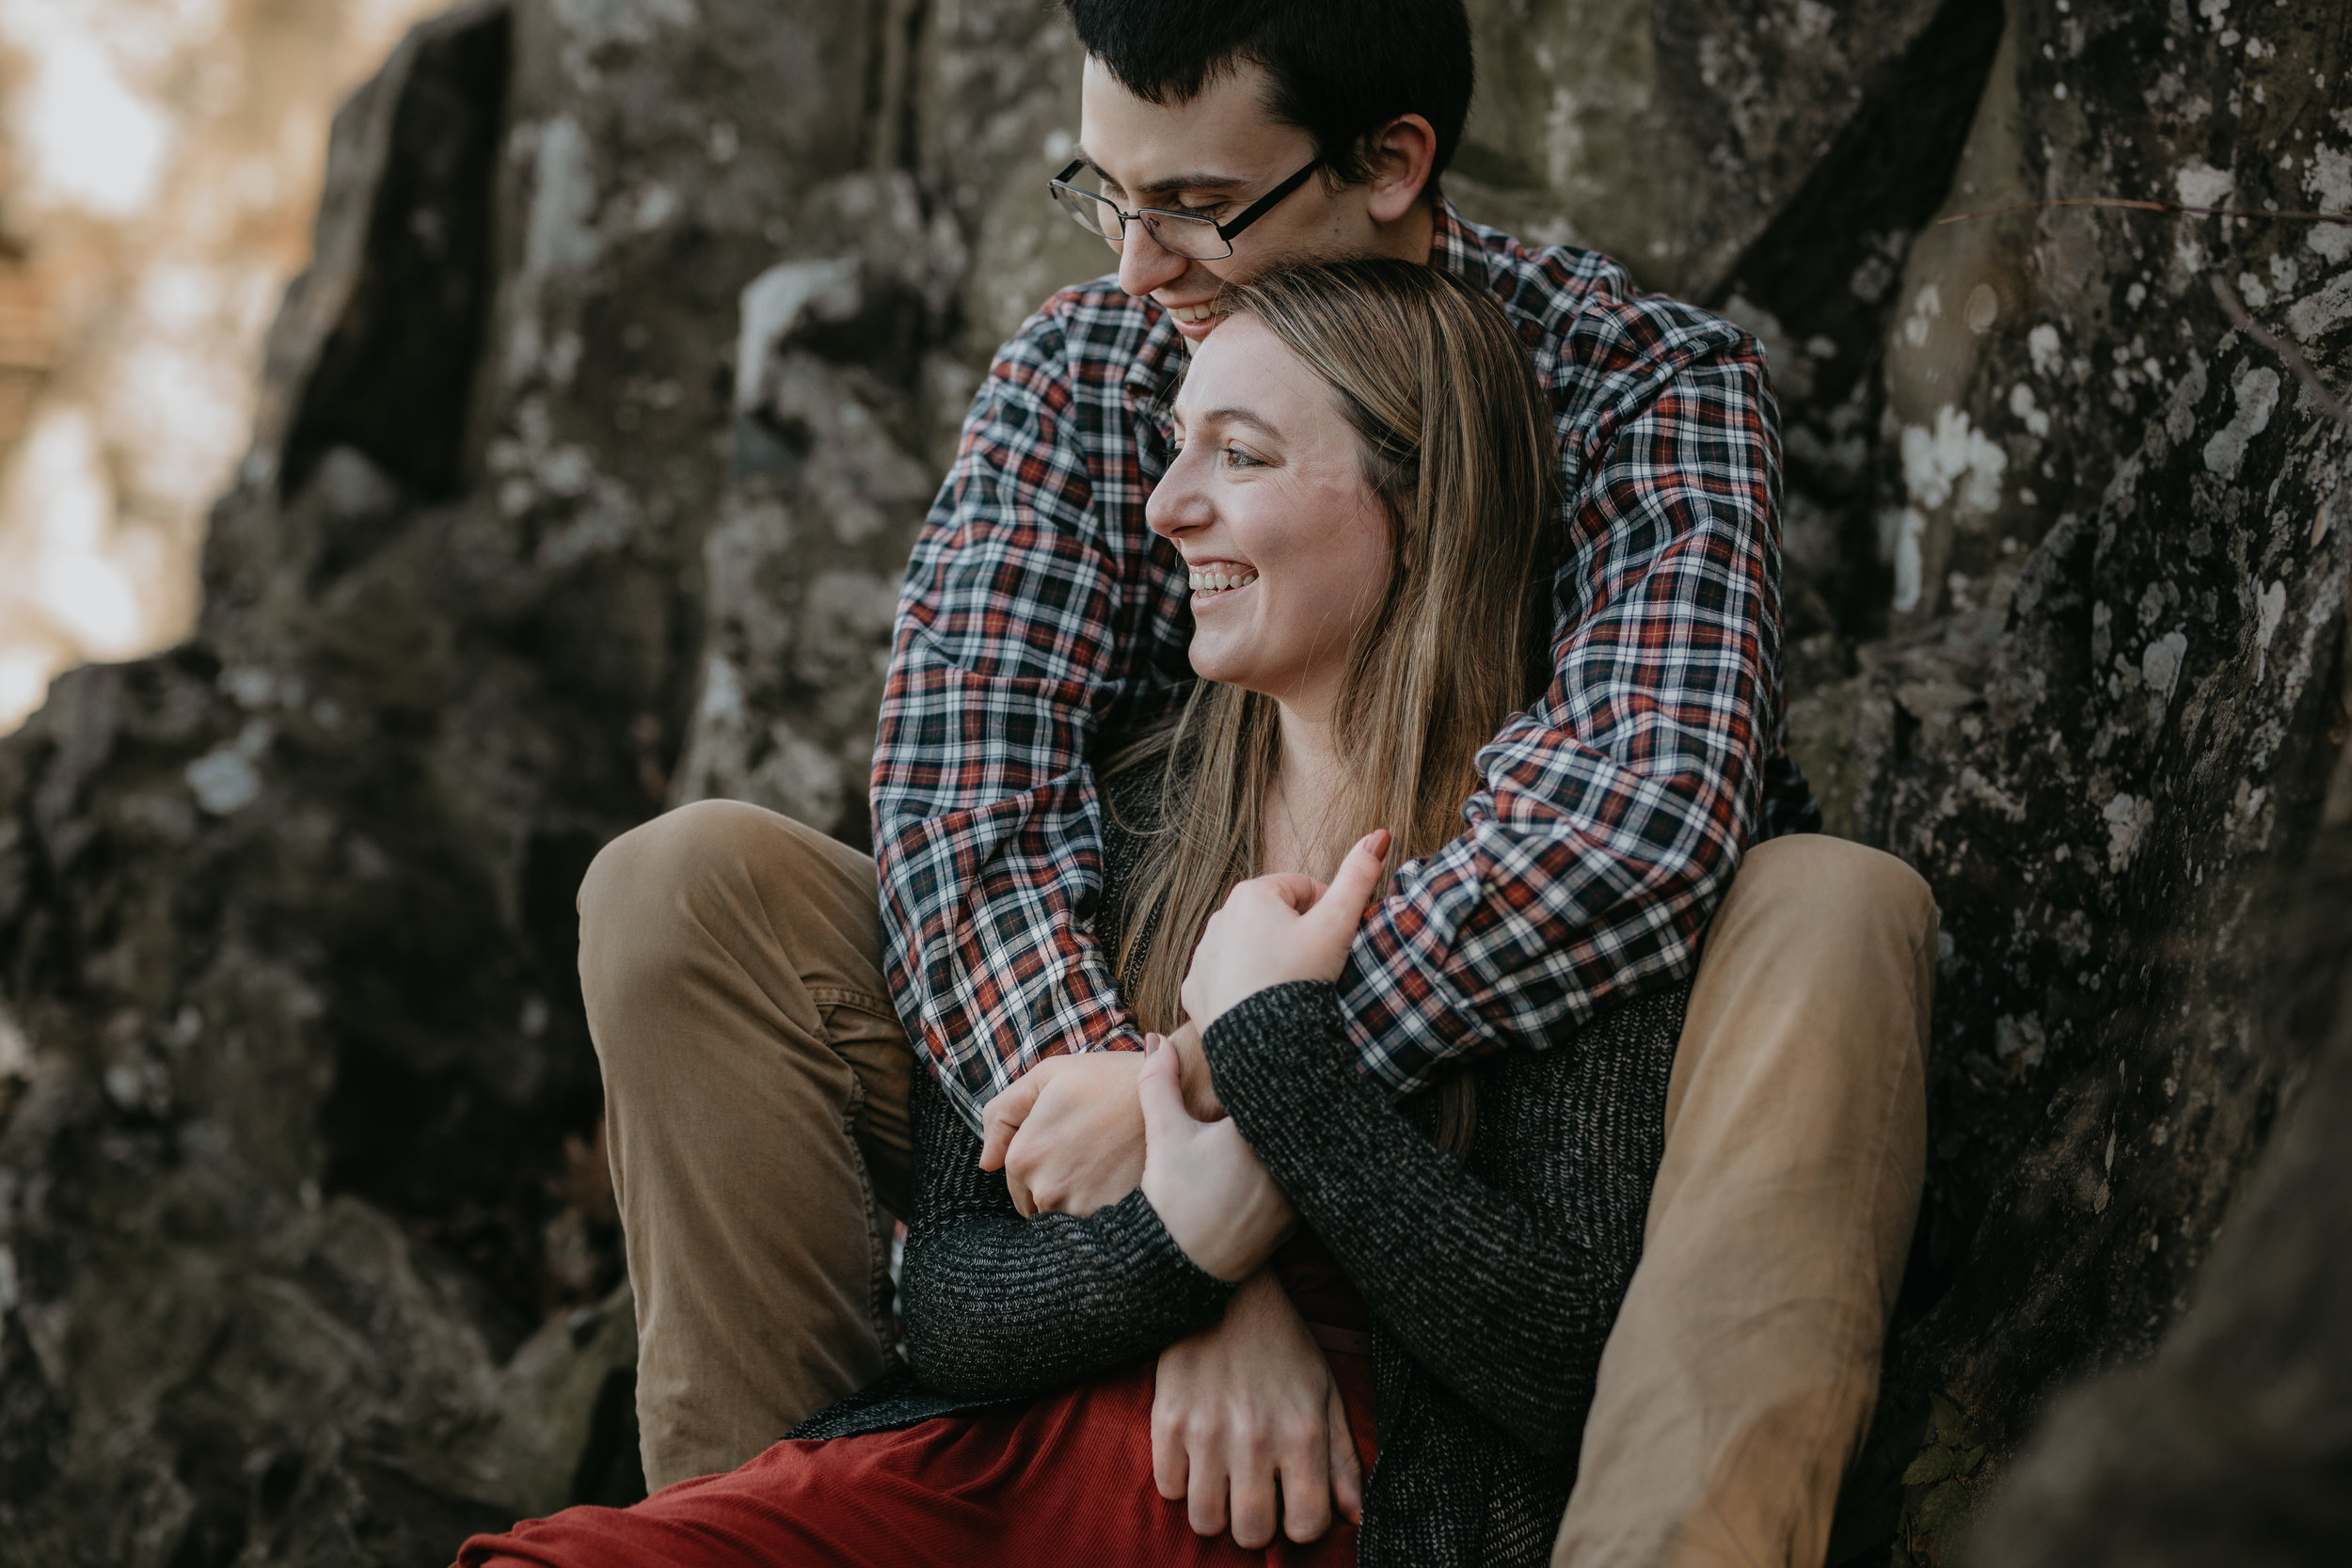 nicole-daacke-photography-shenandoah-national-park-adventure-engagement-session-with-fall-foliage-shenandoah-elopement-photographer-engagement-photos-in-virginia-charlottesville-national-park-adventure-elopement-photographer-3592.jpg